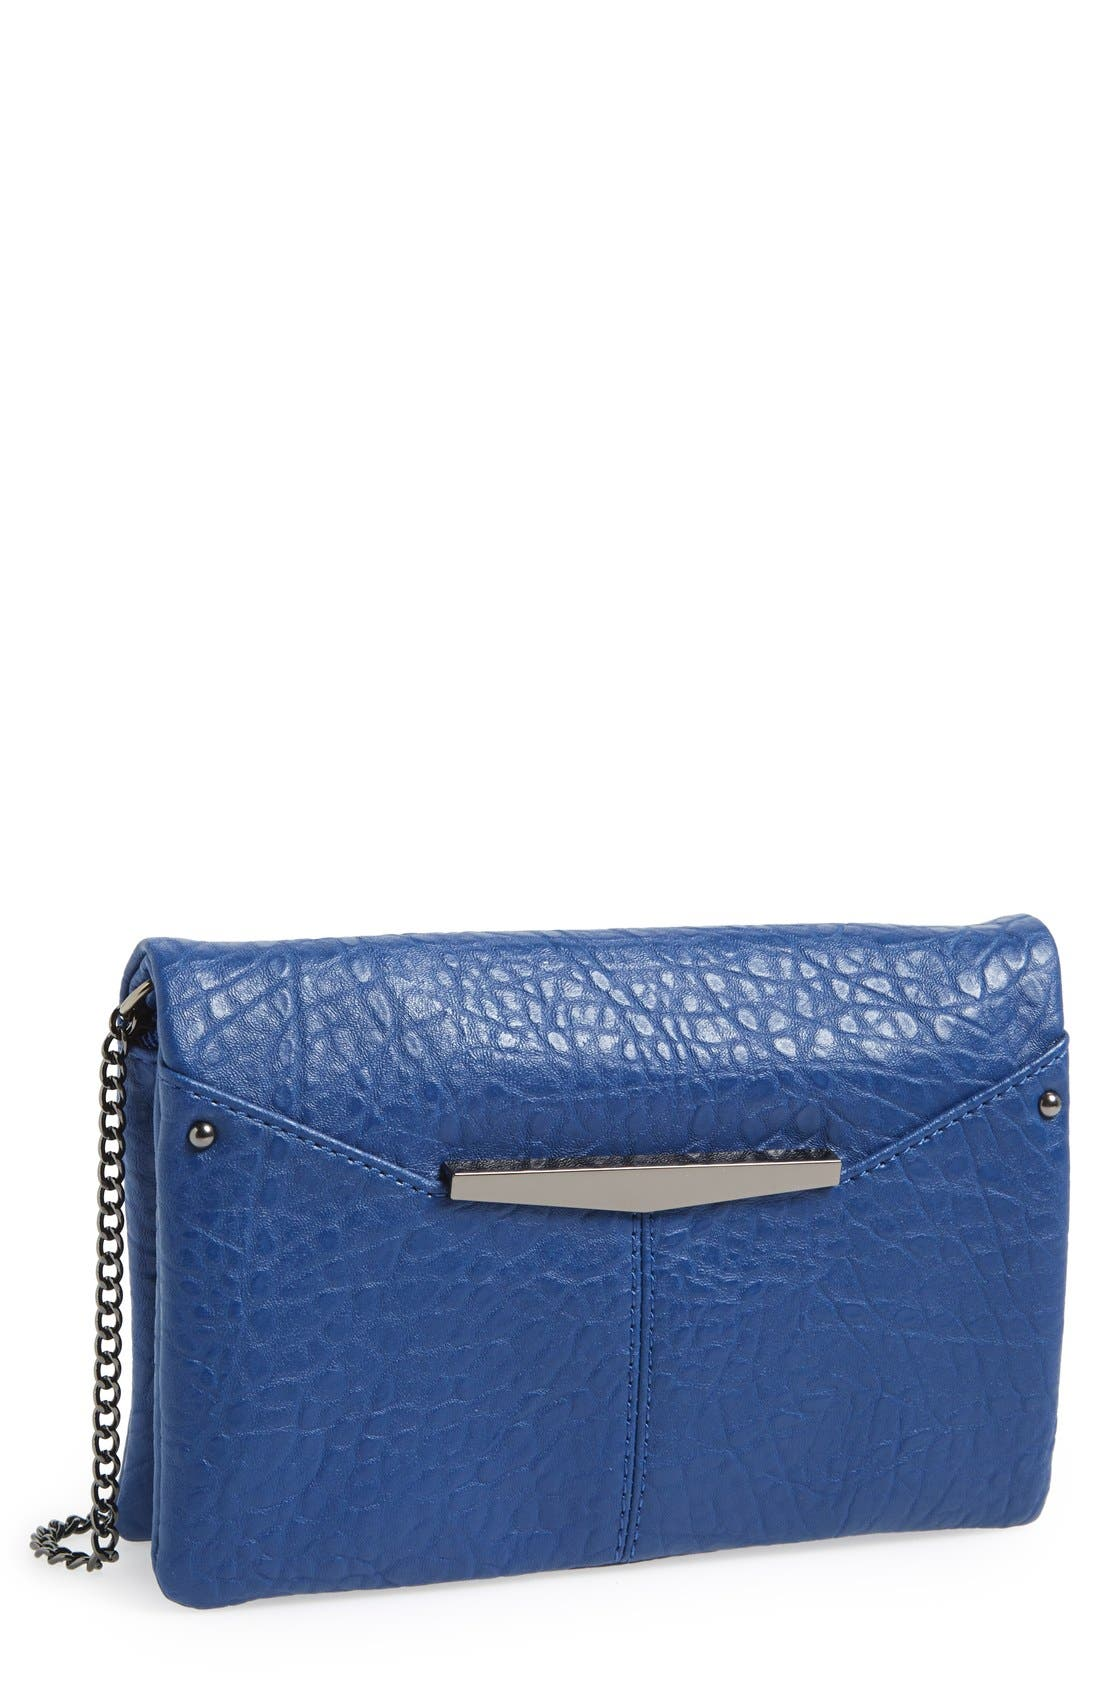 Main Image - Danielle Nicole 'Libby' Convertible Crossbody Bag